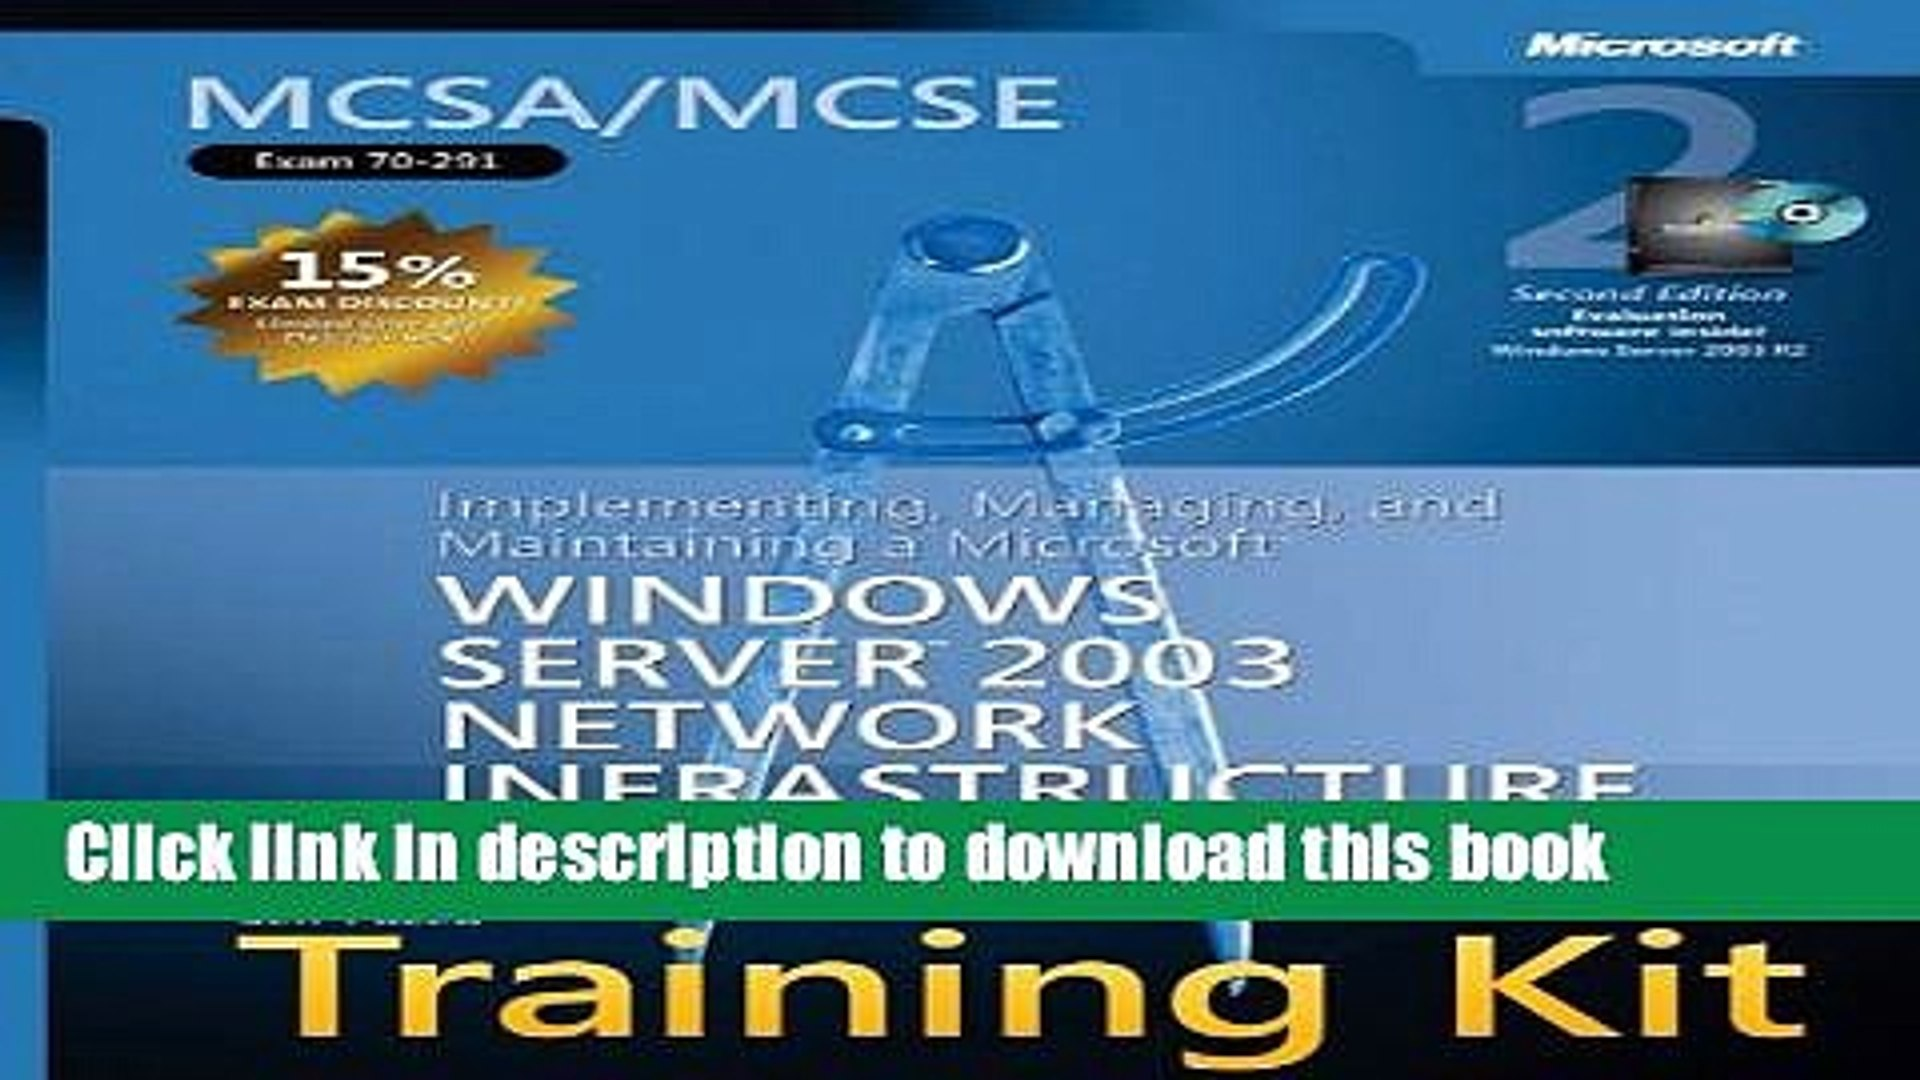 Read MCSA/MCSE Self-Paced Training Kit (Exam 70-291): Implementing, Managing, and Maintaining a